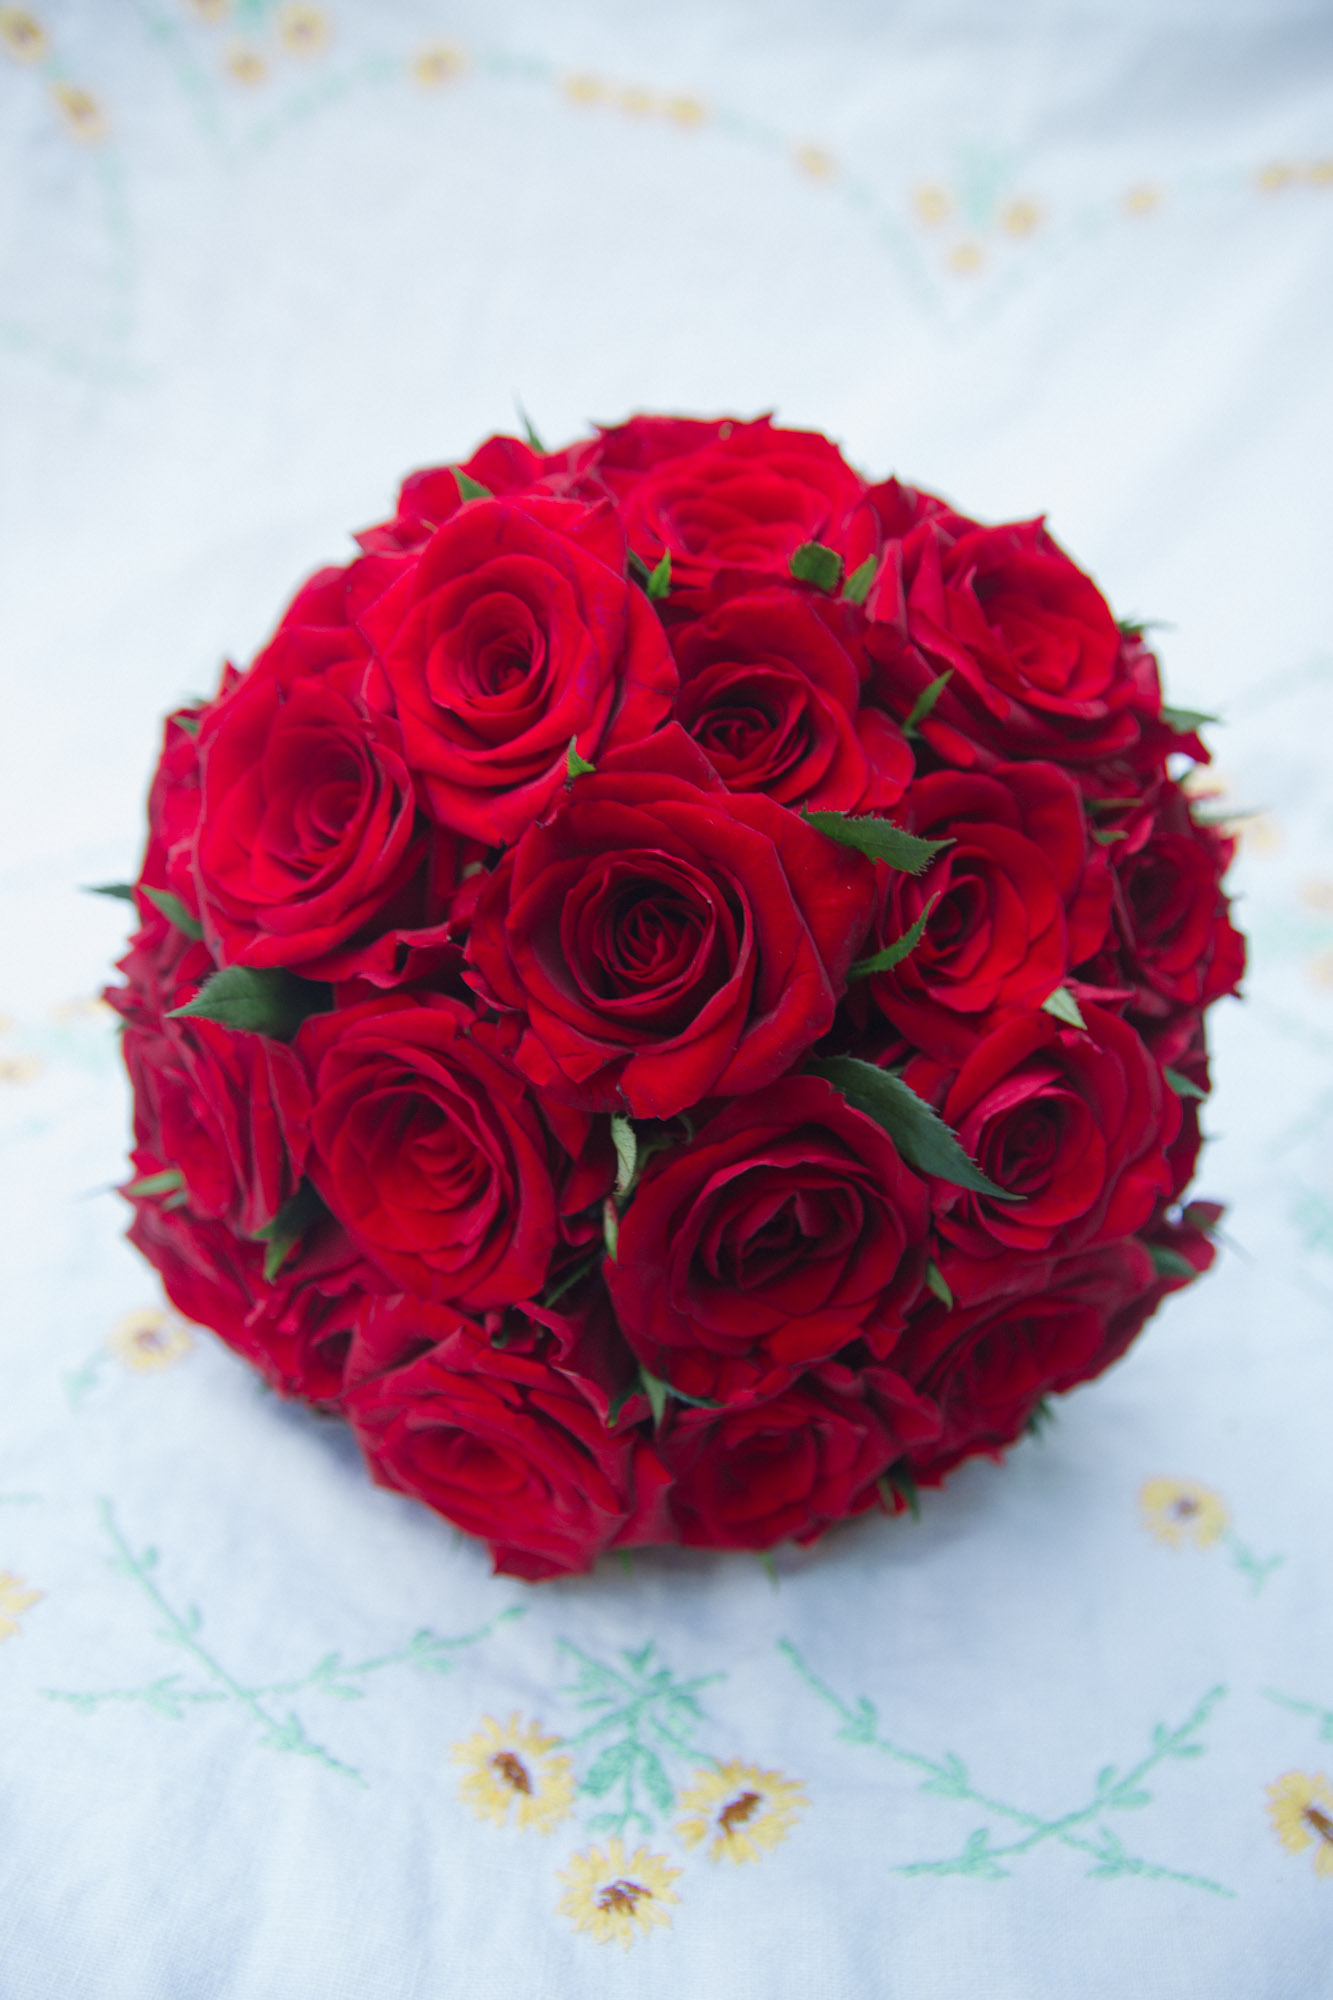 red rose bouquet